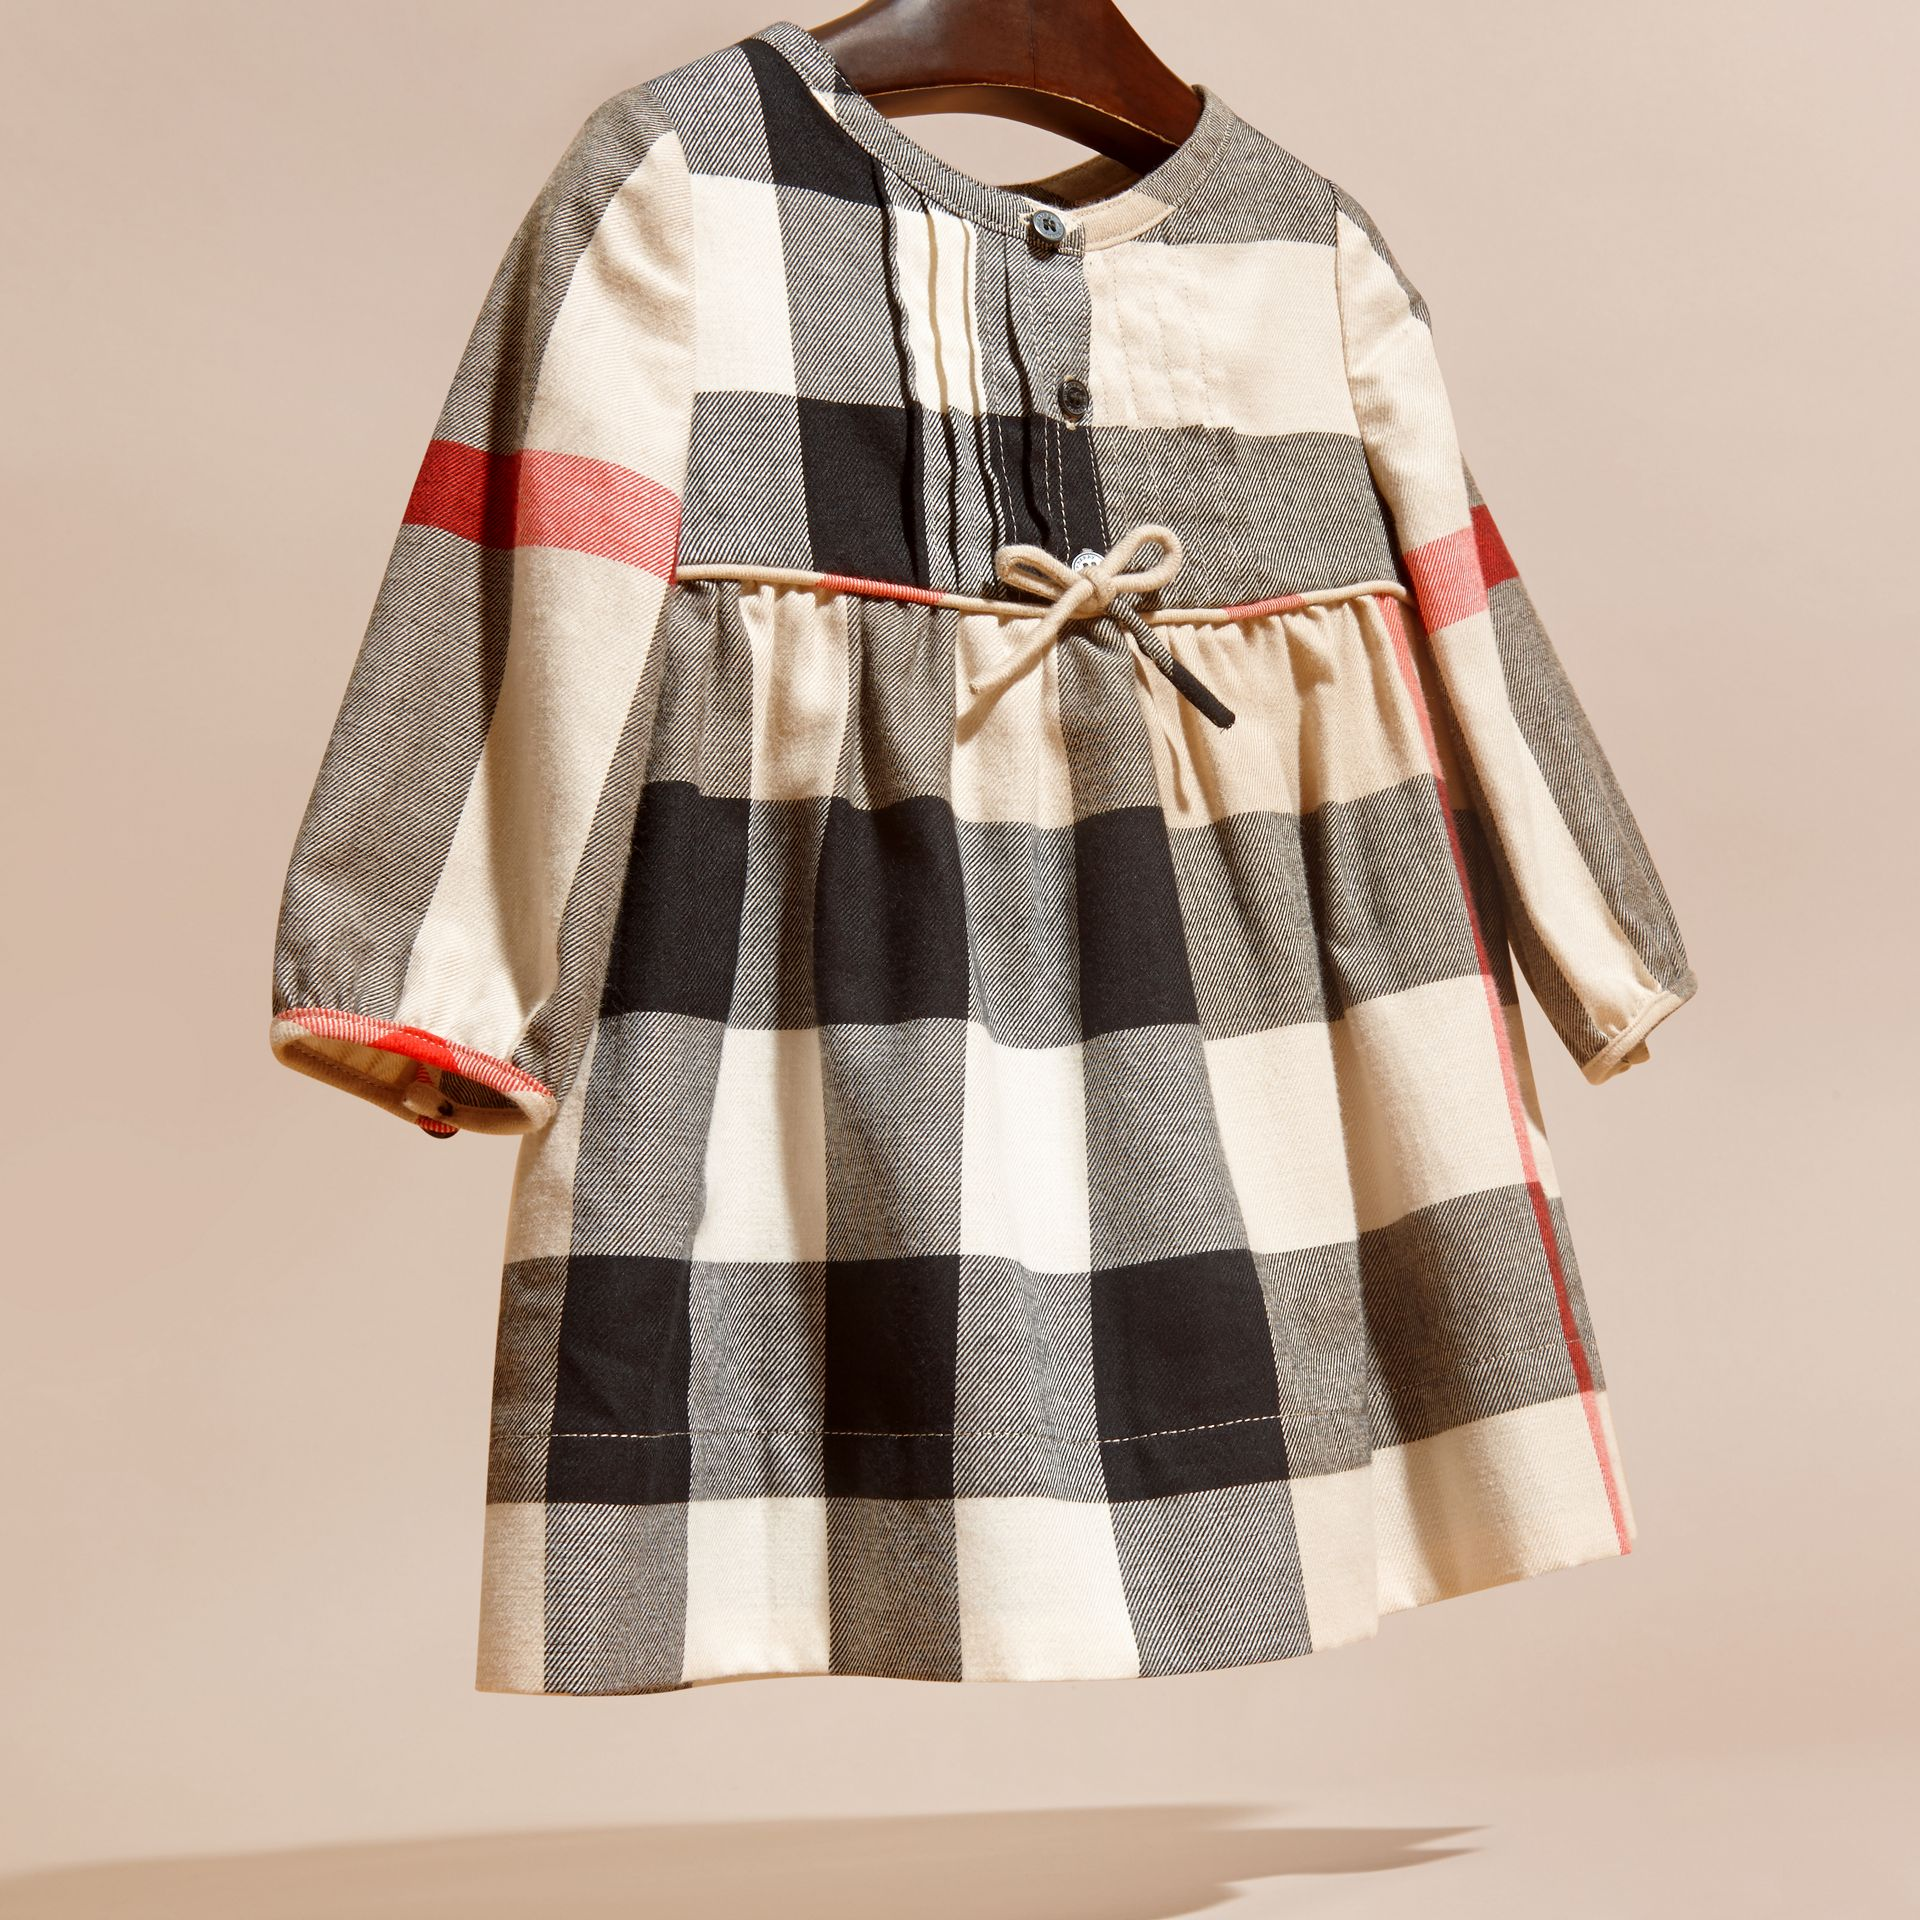 New classic womens Check Cotton Flannel Dress with Bow Detail - gallery image 3